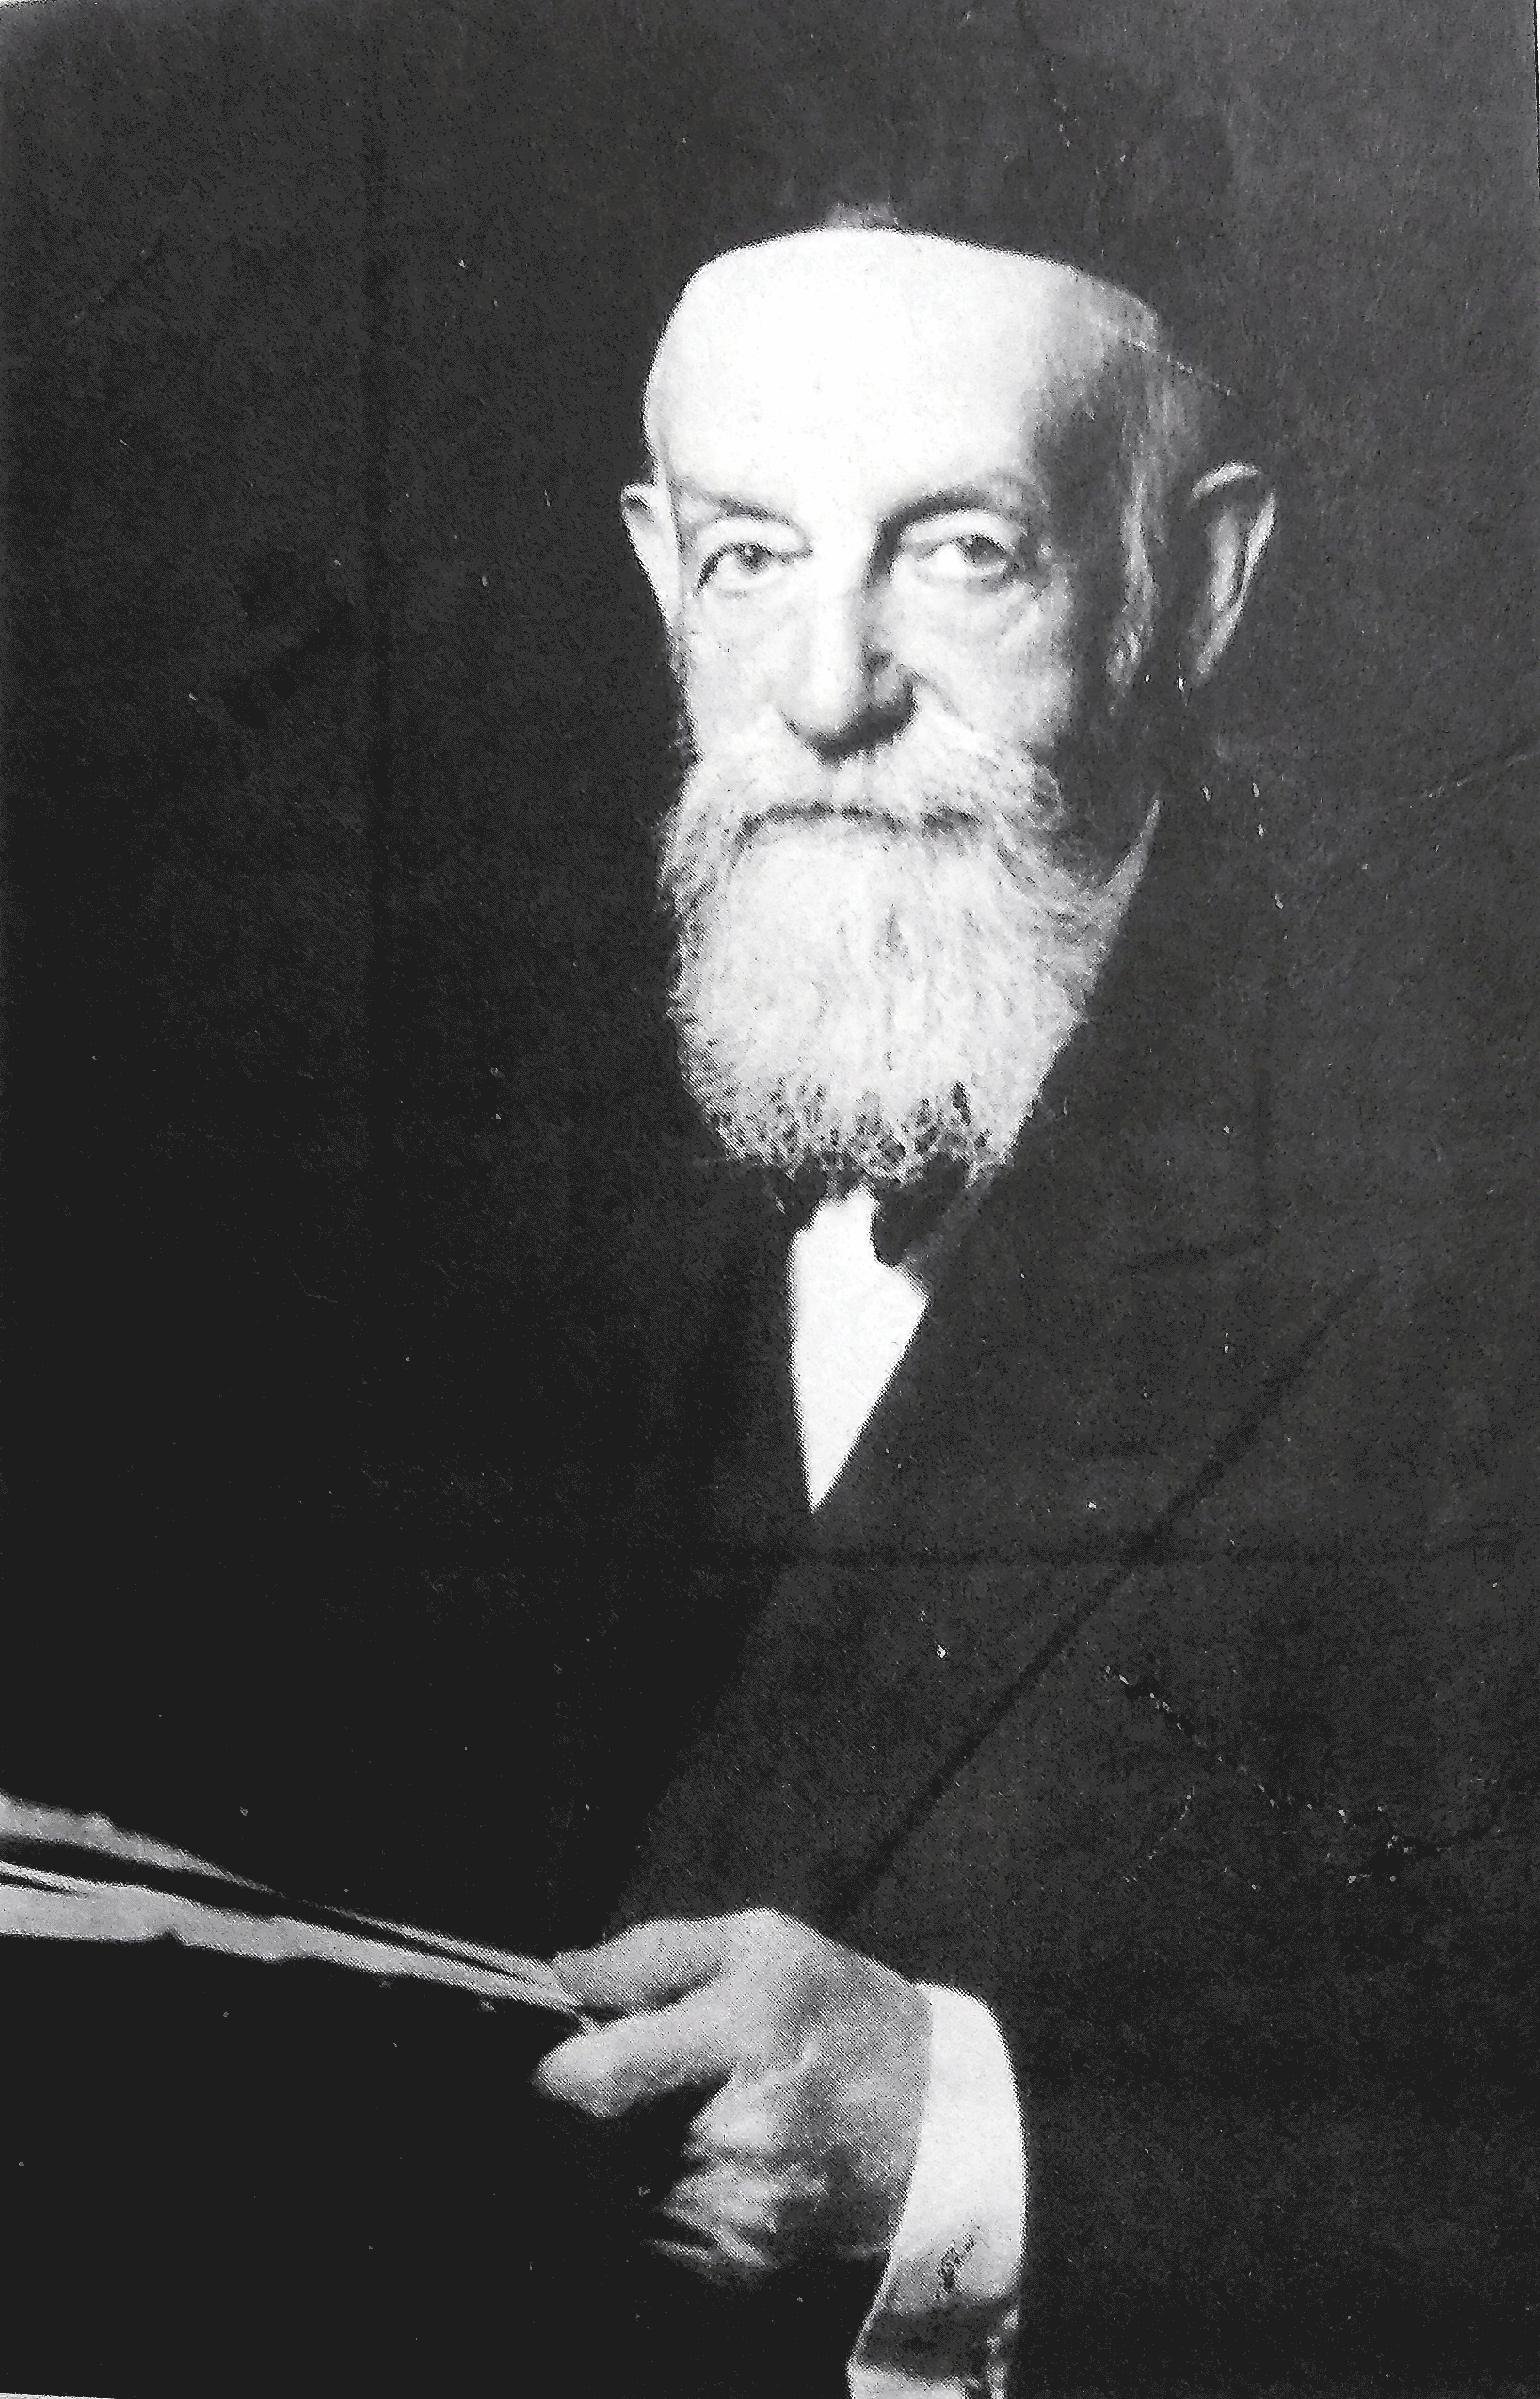 Rabbi Jacob Rosenheim